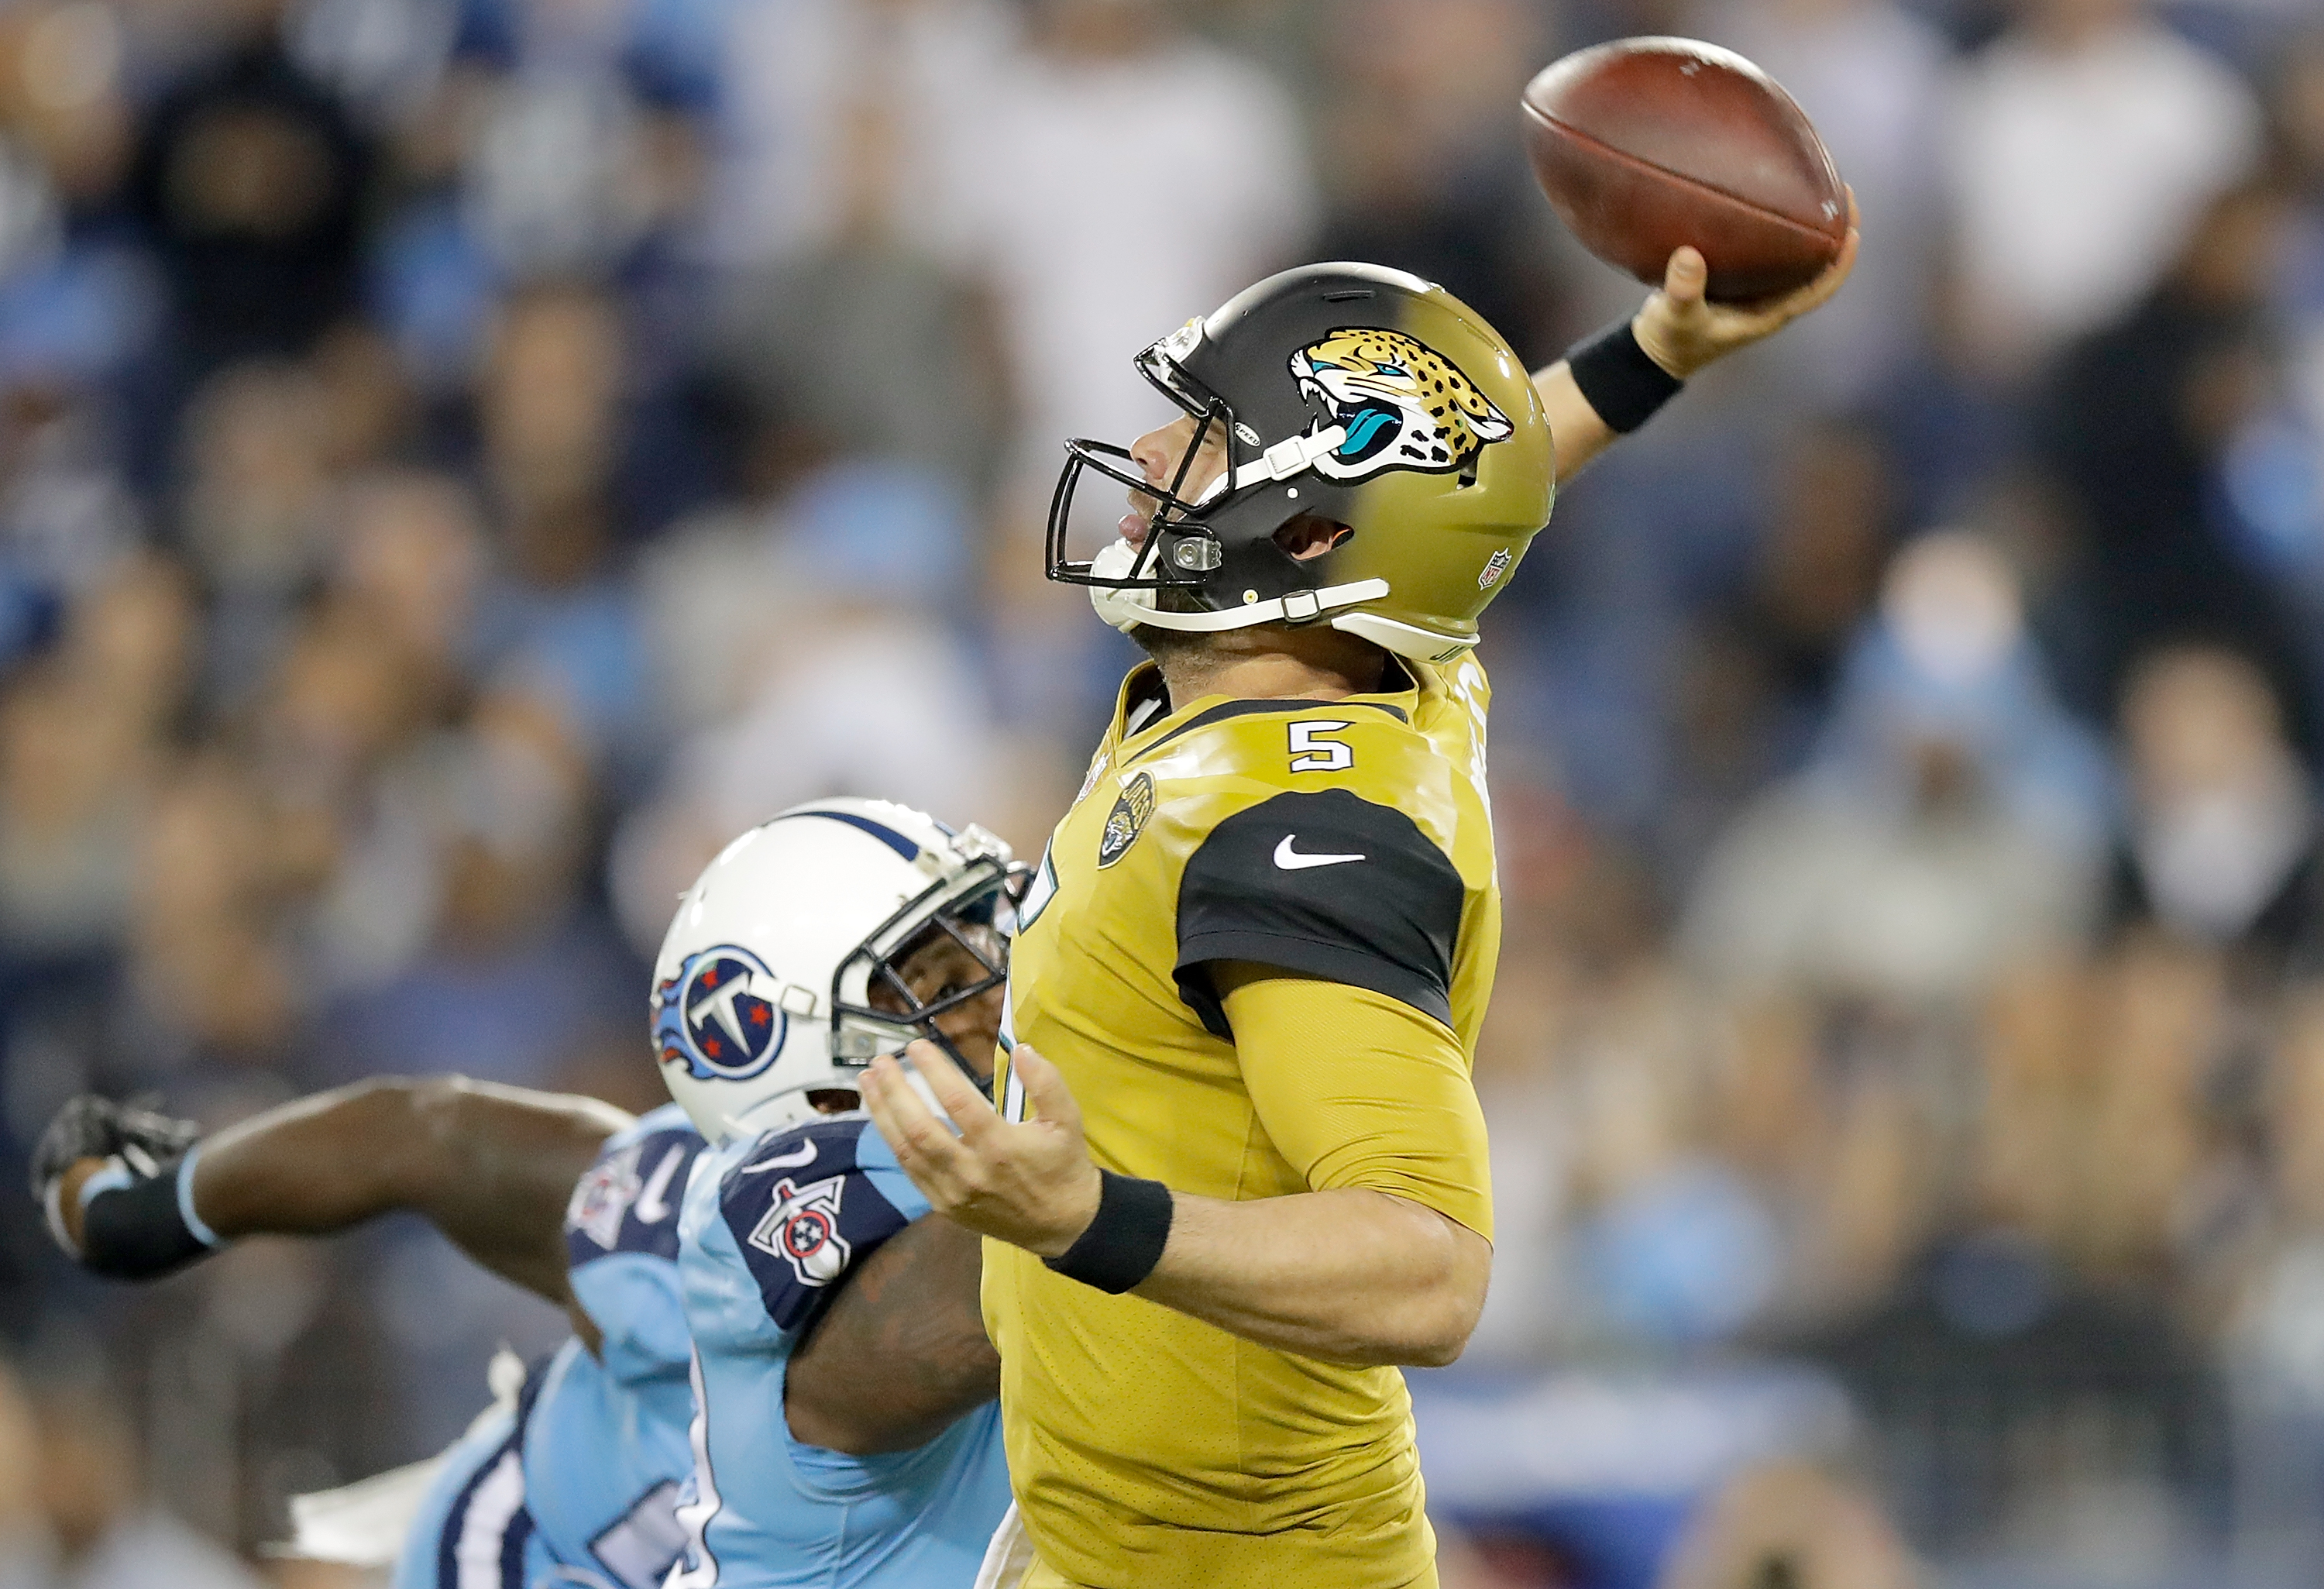 jacksonville jaguars v tennessee titans. Cars Review. Best American Auto & Cars Review